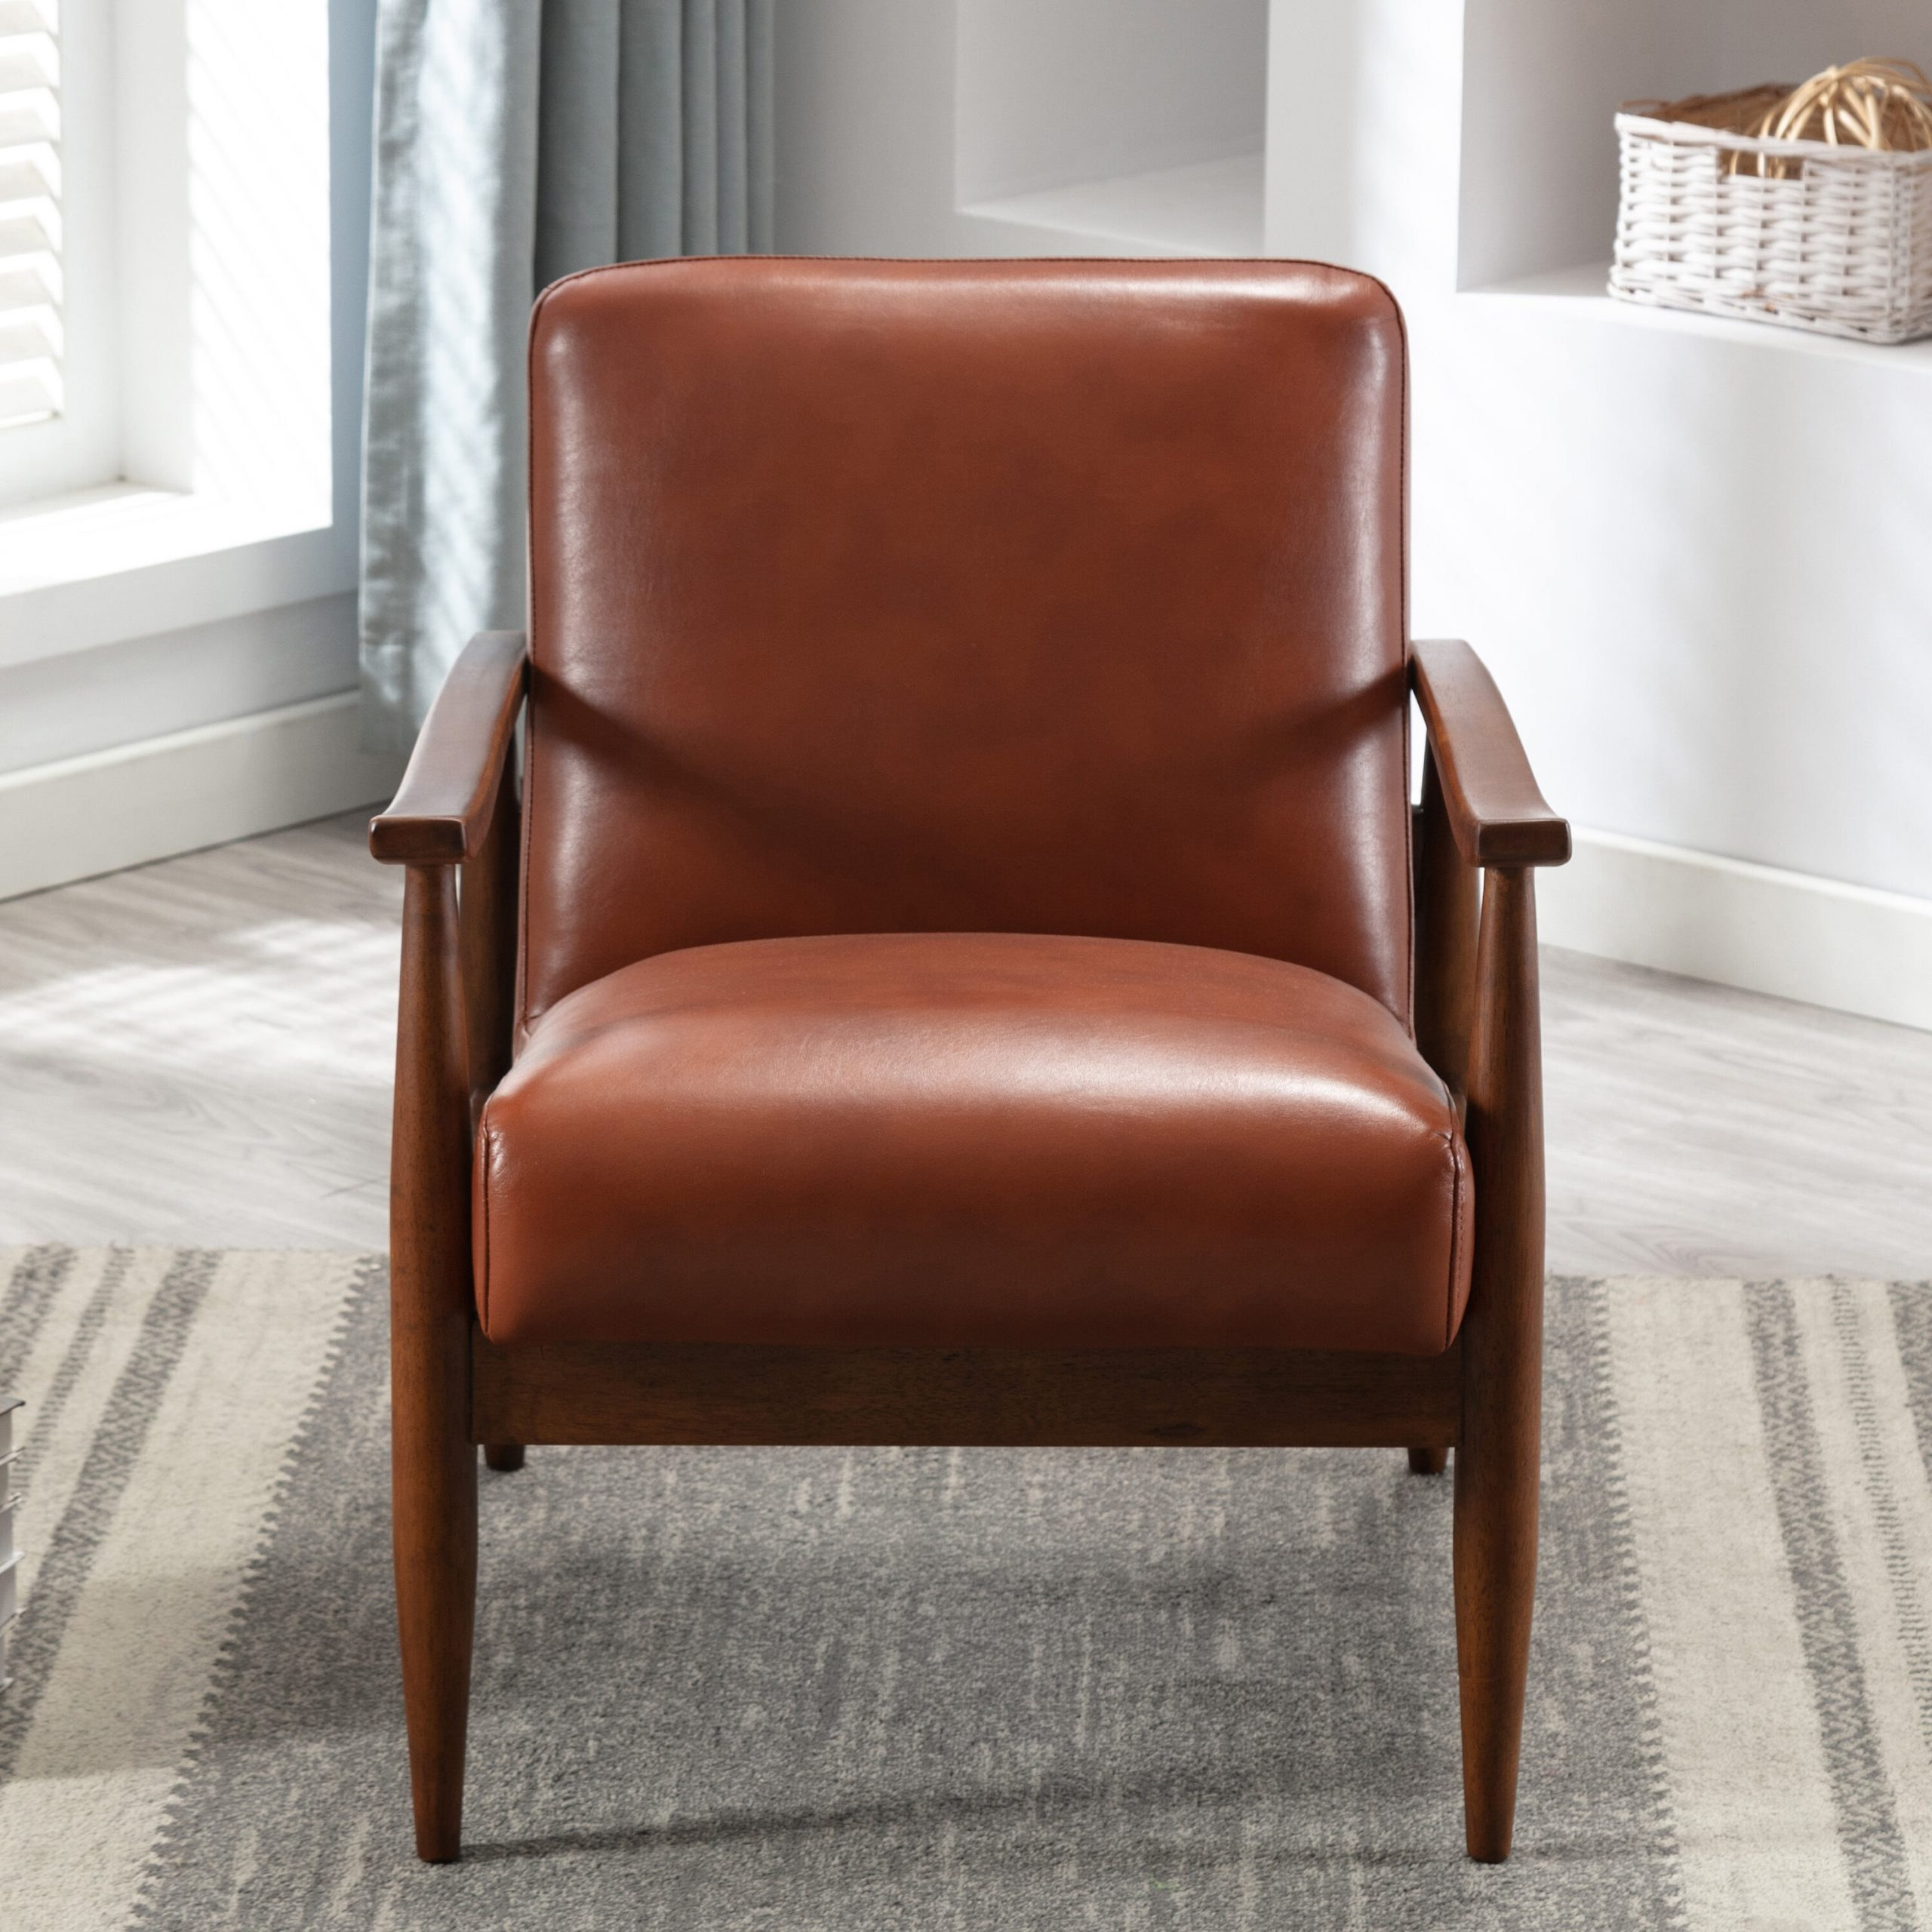 Faux Leather George Oliver Accent Chairs You'Ll Love In 2021 Regarding Marisa Faux Leather Wingback Chairs (View 6 of 15)